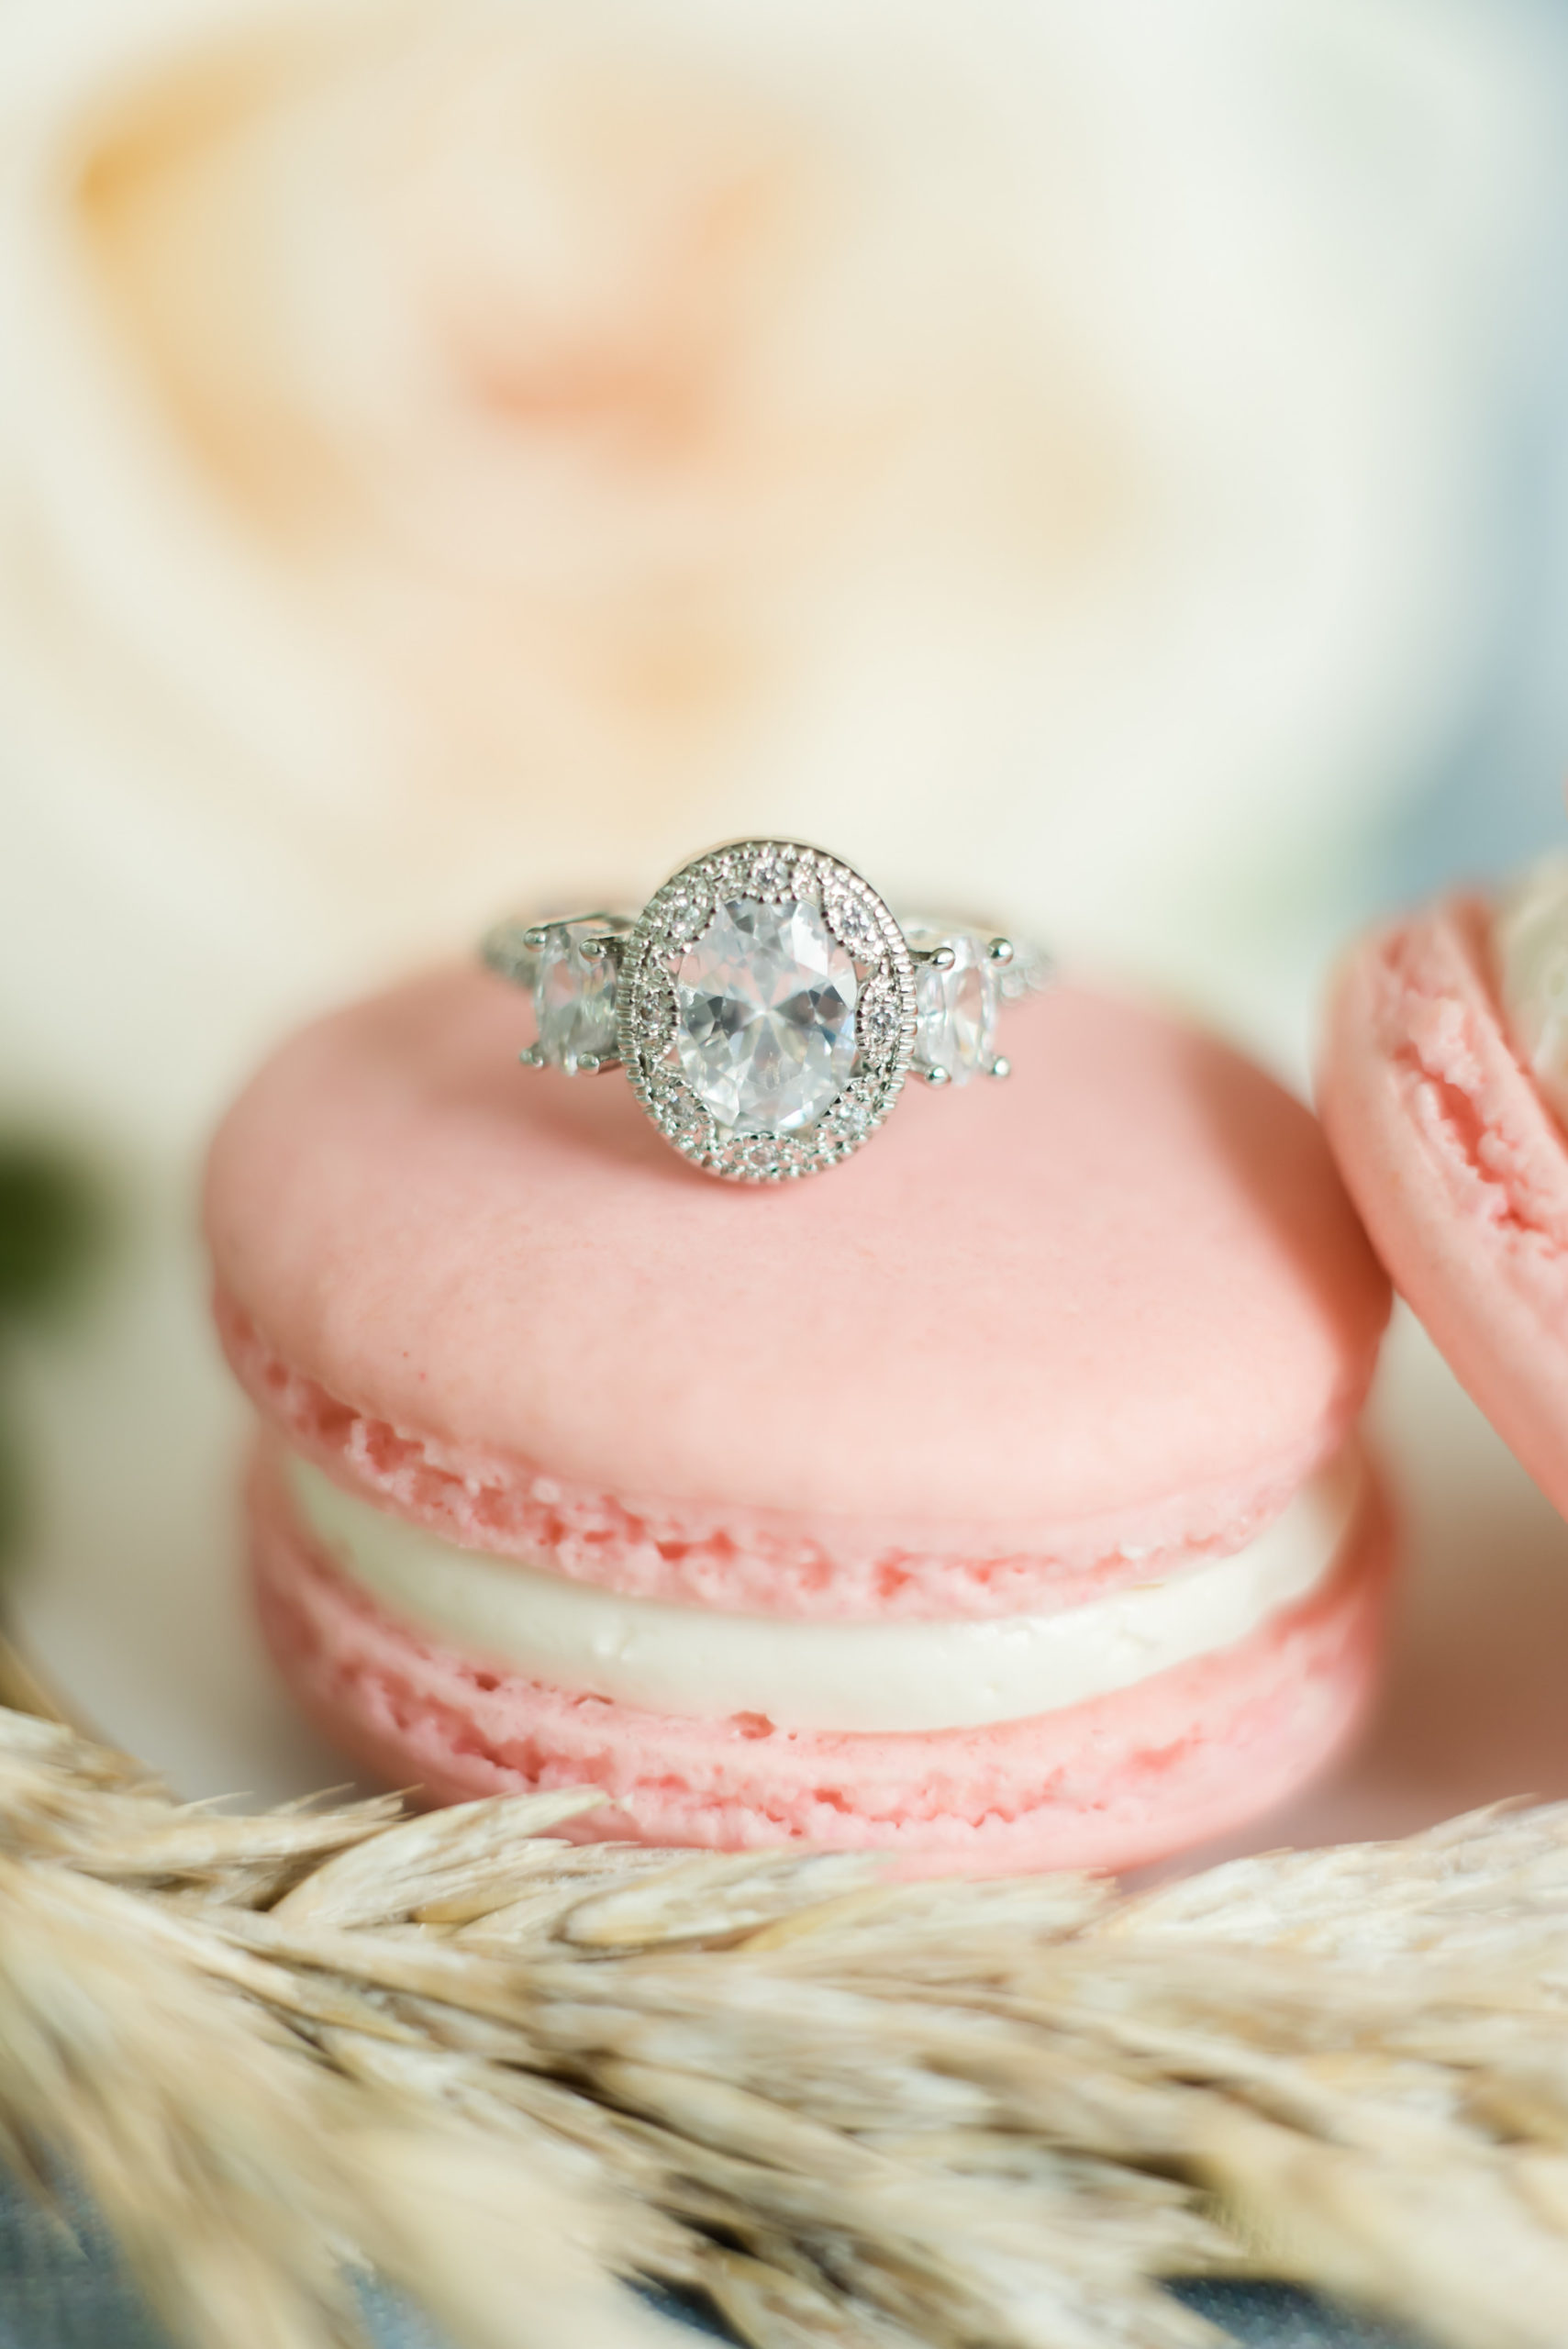 Oval Diamond Engagement Ring Sitting on Dusty Rose Macroon   Tampa Bay Wedding Planner Elegant Affairs By Design